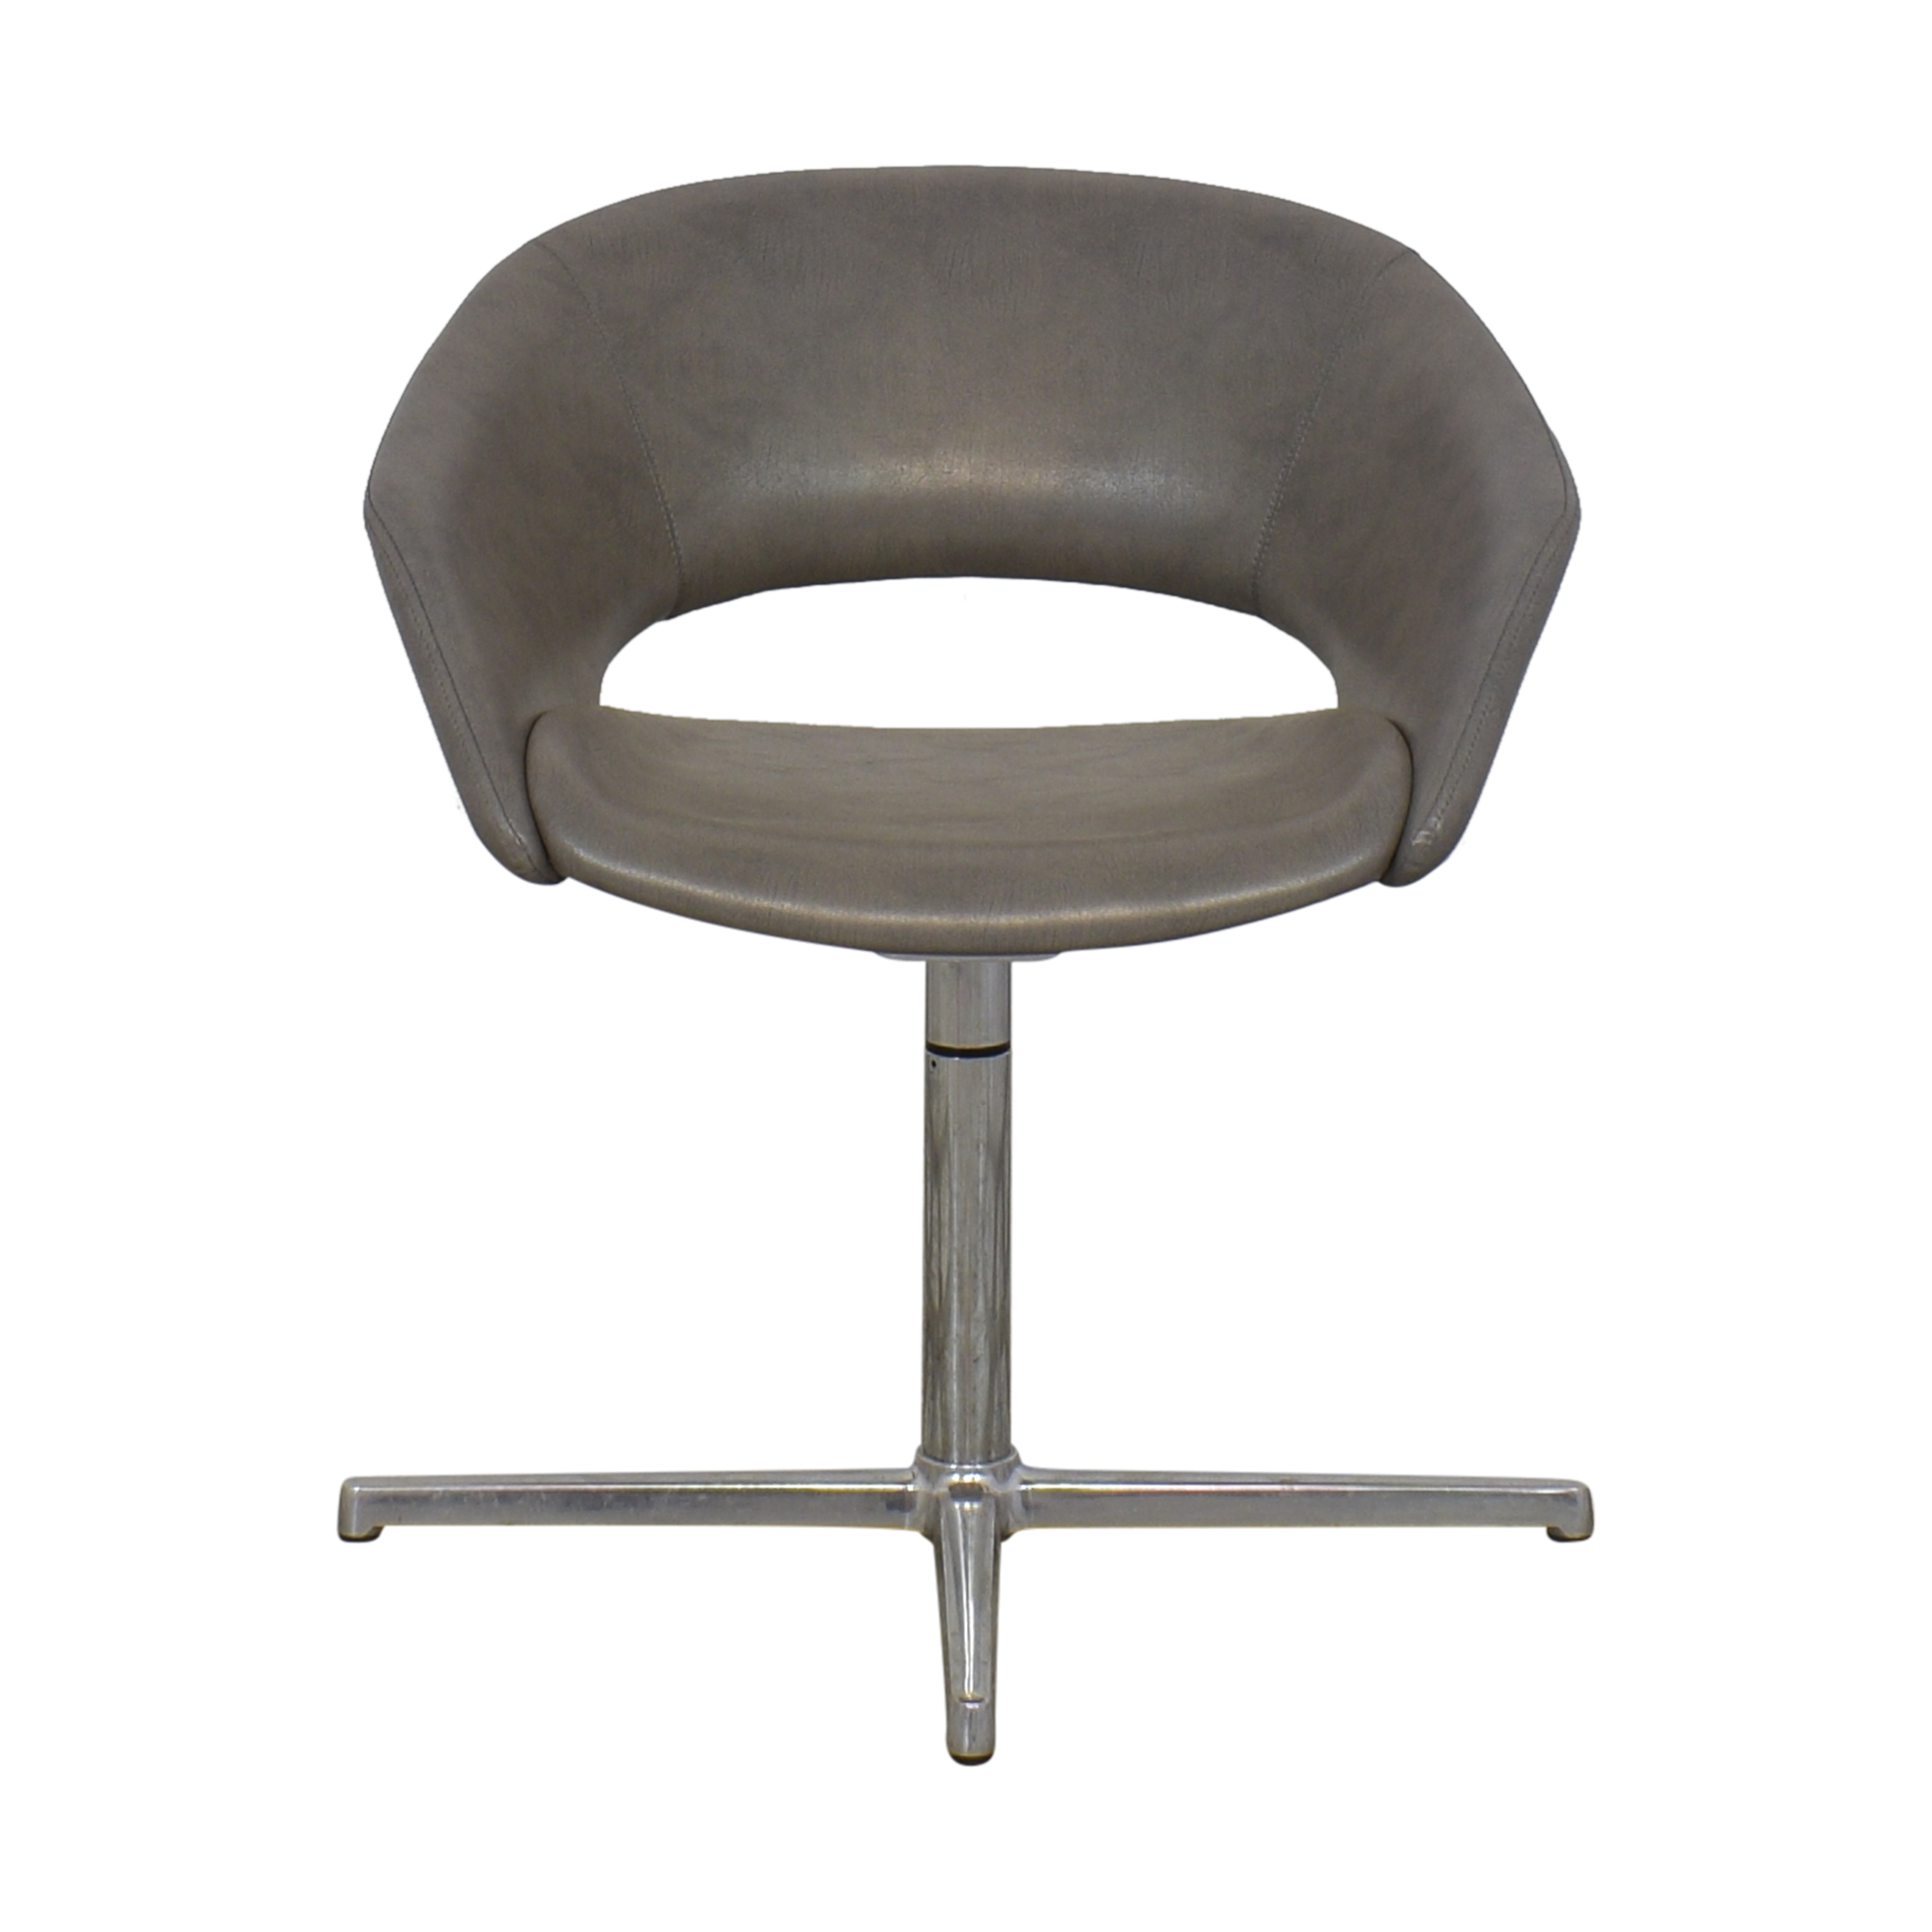 Leland International Leland Mod Pedestal Swivel Chair on sale